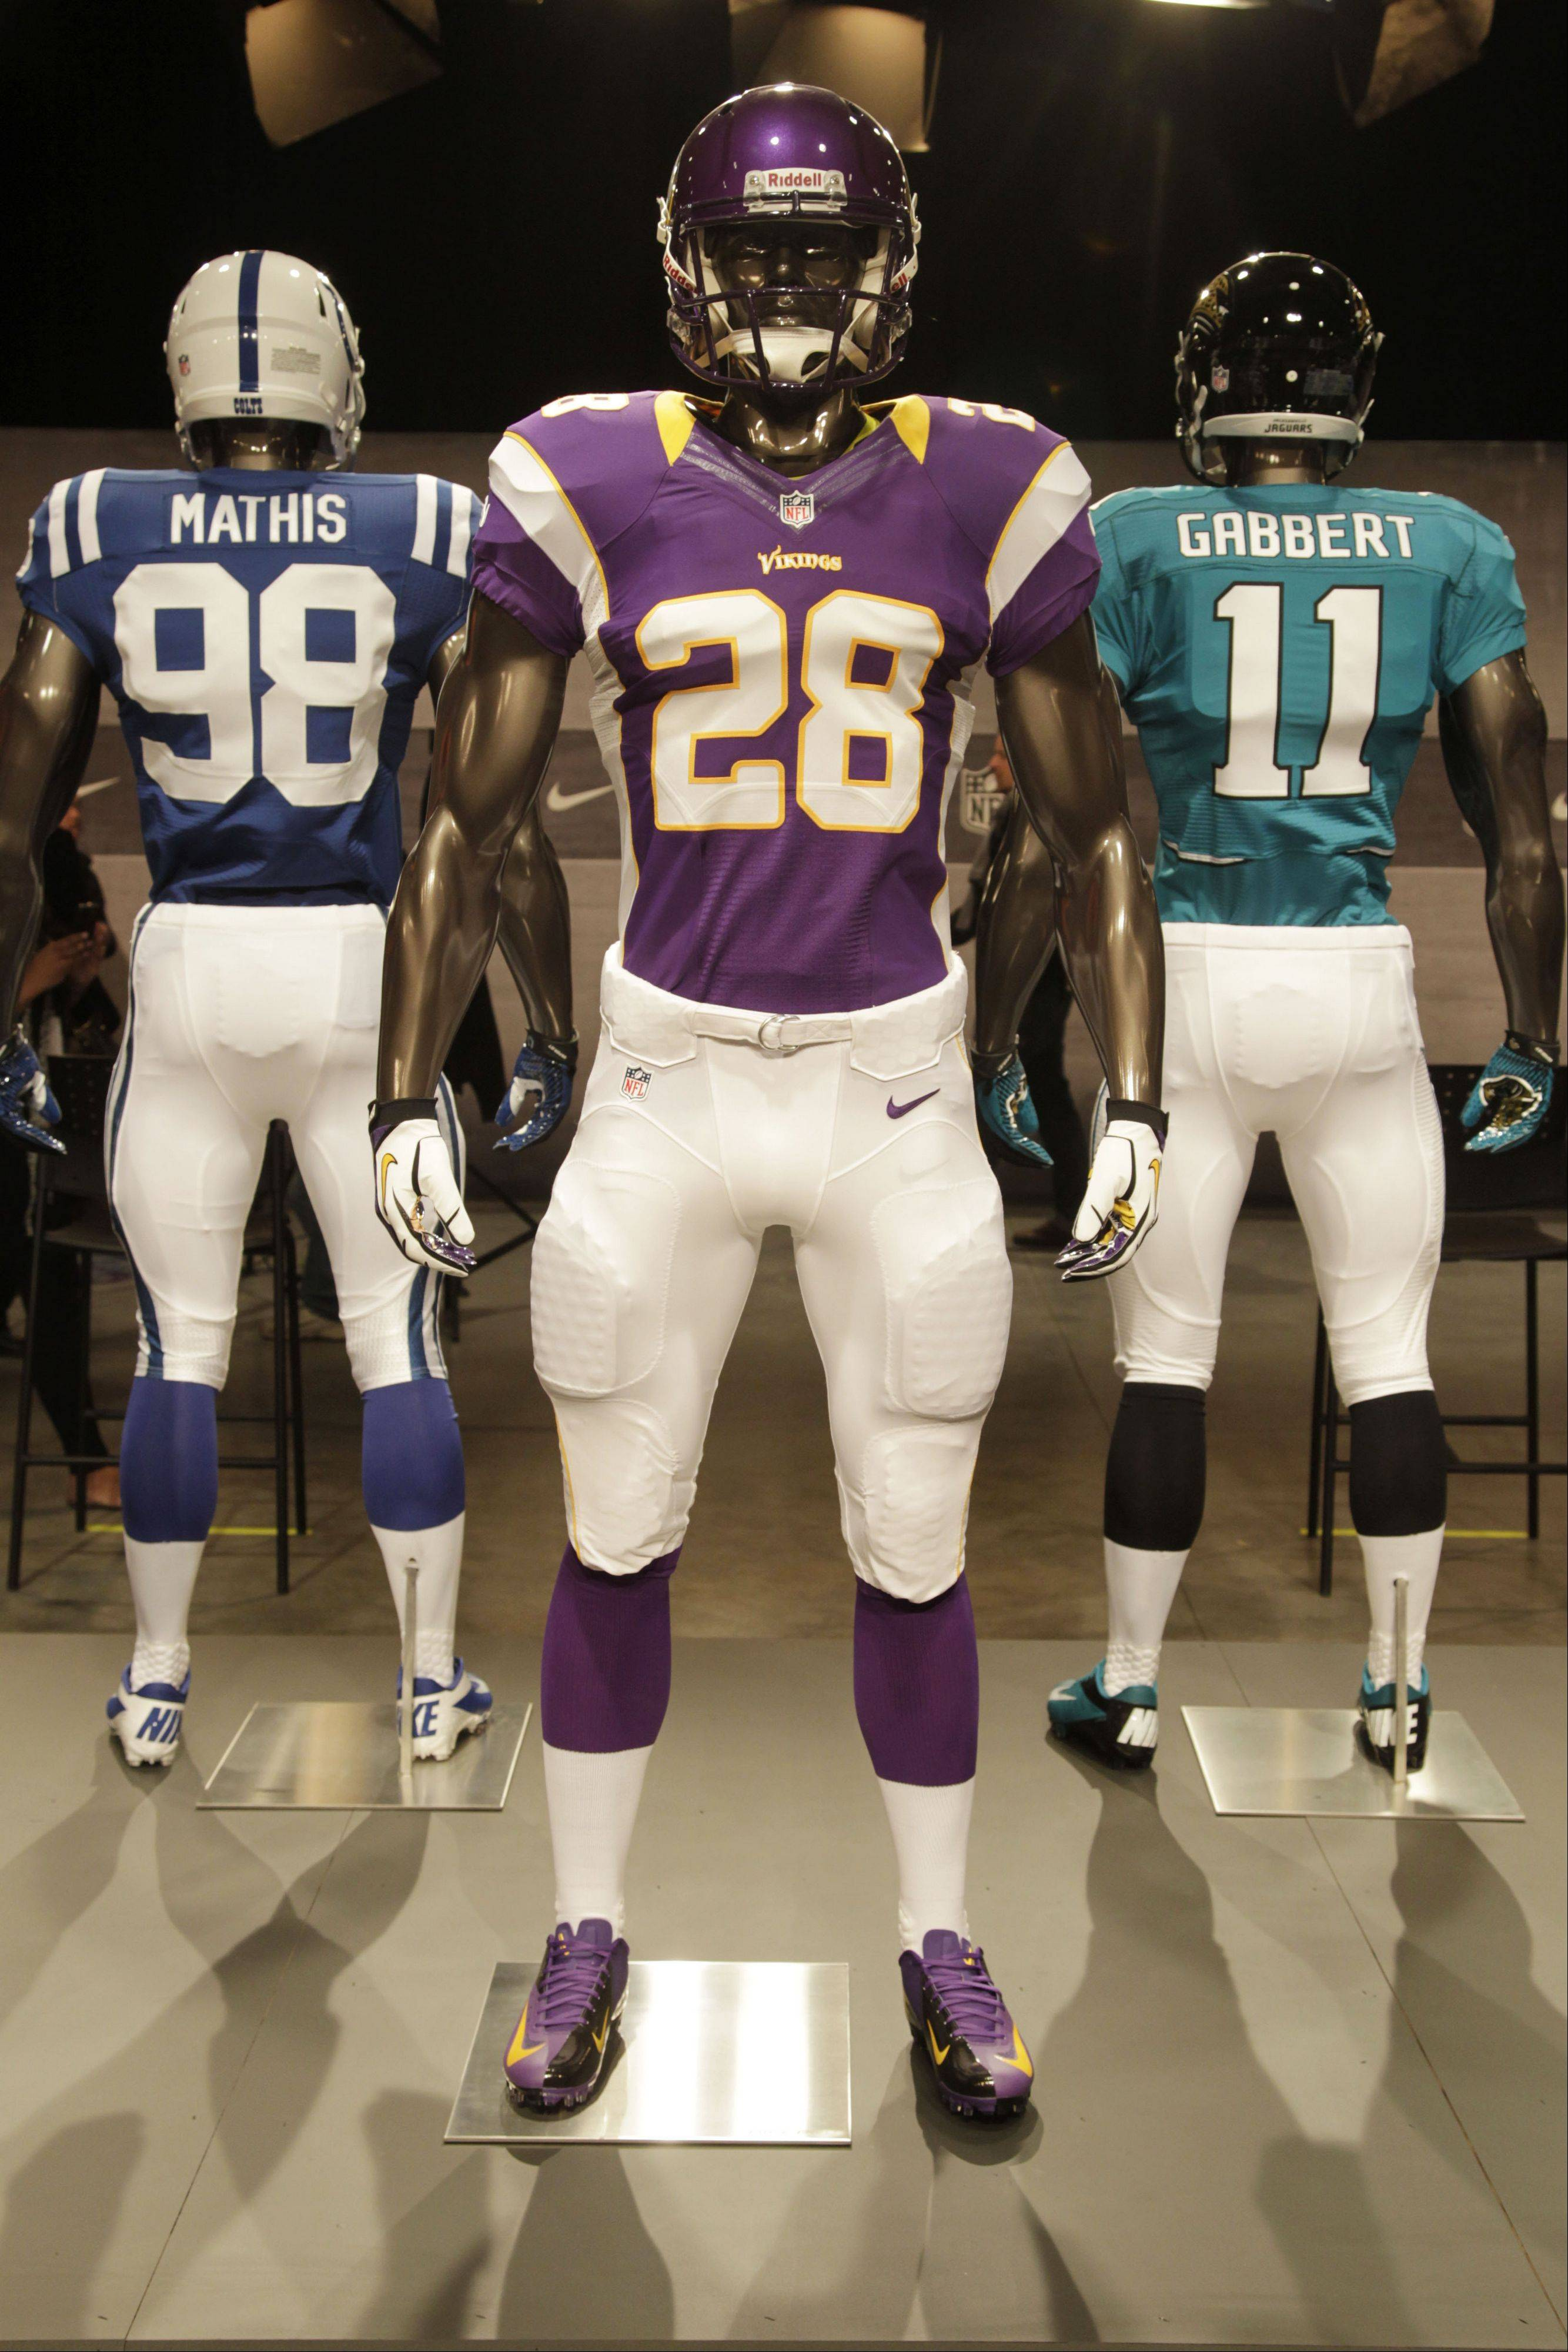 The new Minnesota Vikings uniform is displayed on a mannequin in New York, Tuesday, April 3, 2012. NFL has unveiled its new sleek uniforms designed by Nike. While most of the new uniforms are not very different visually, they all are made with new technology that make them lighter, dryer and more comfortable.